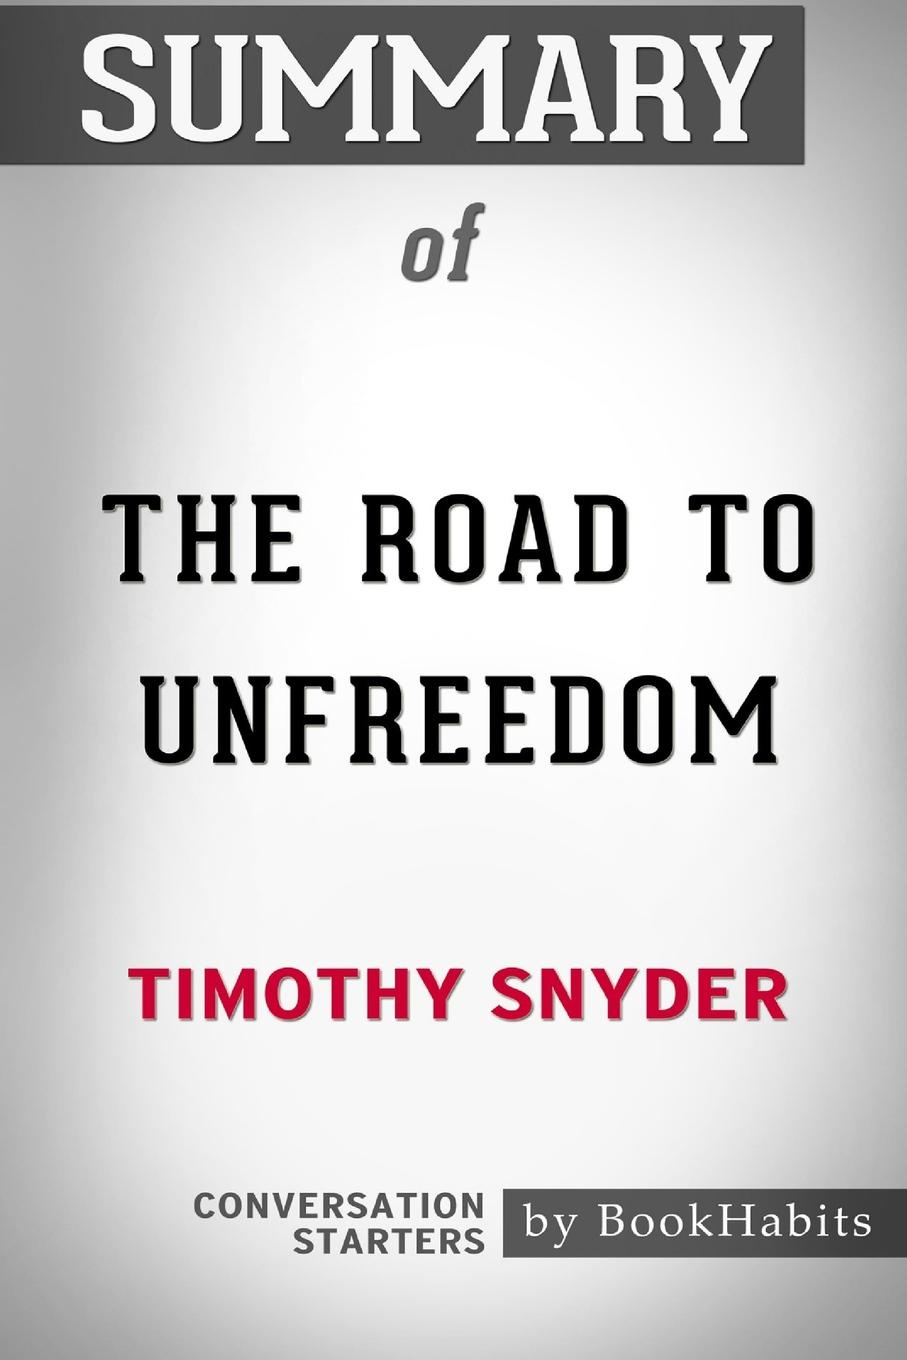 где купить BookHabits Summary of The Road to Unfreedom by Timothy Snyder. Conversation Starters по лучшей цене